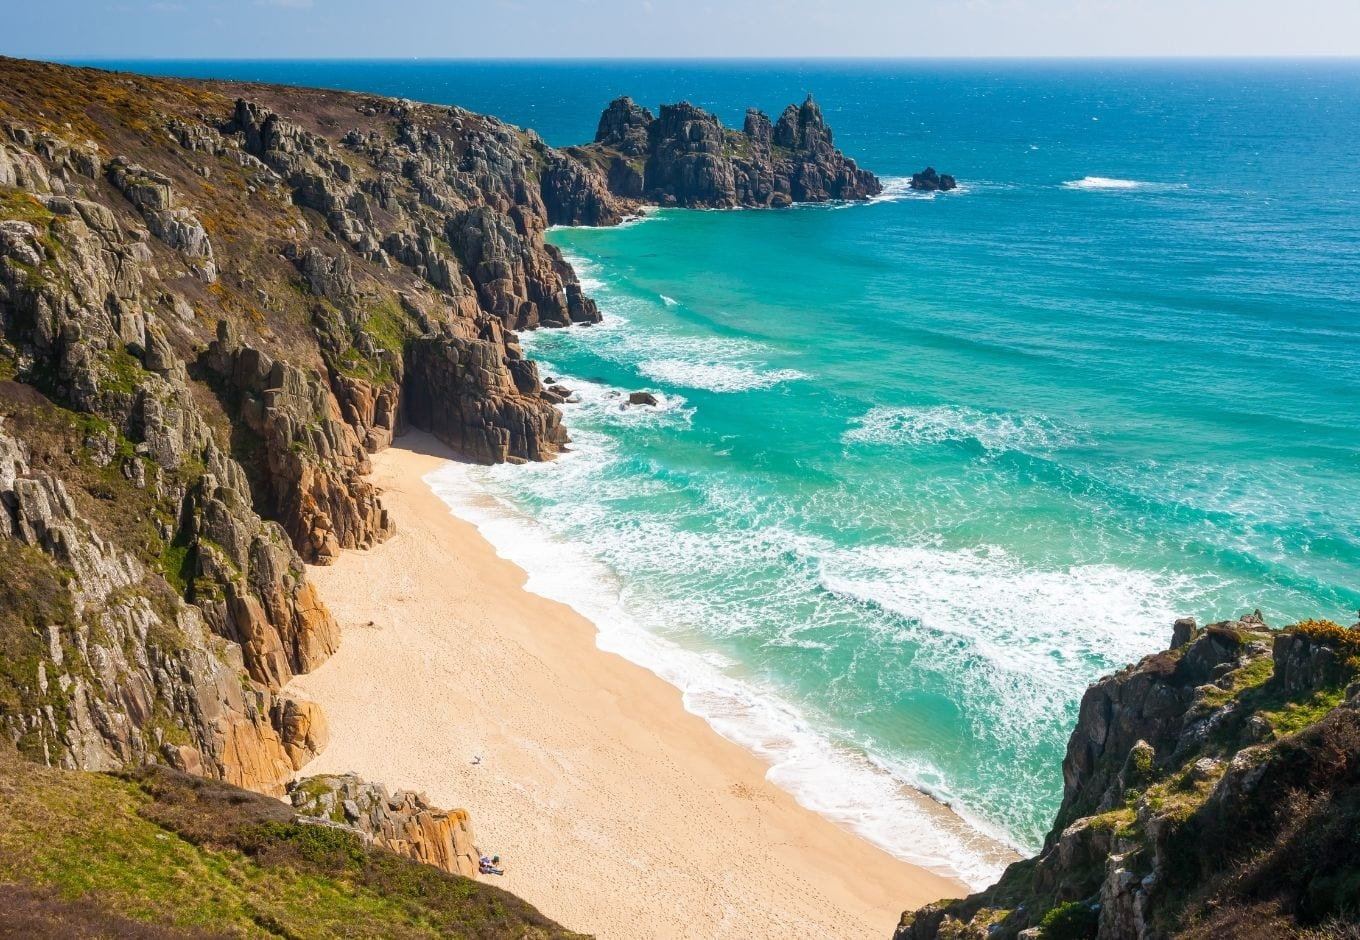 View of a beach in Cornwall, UK.